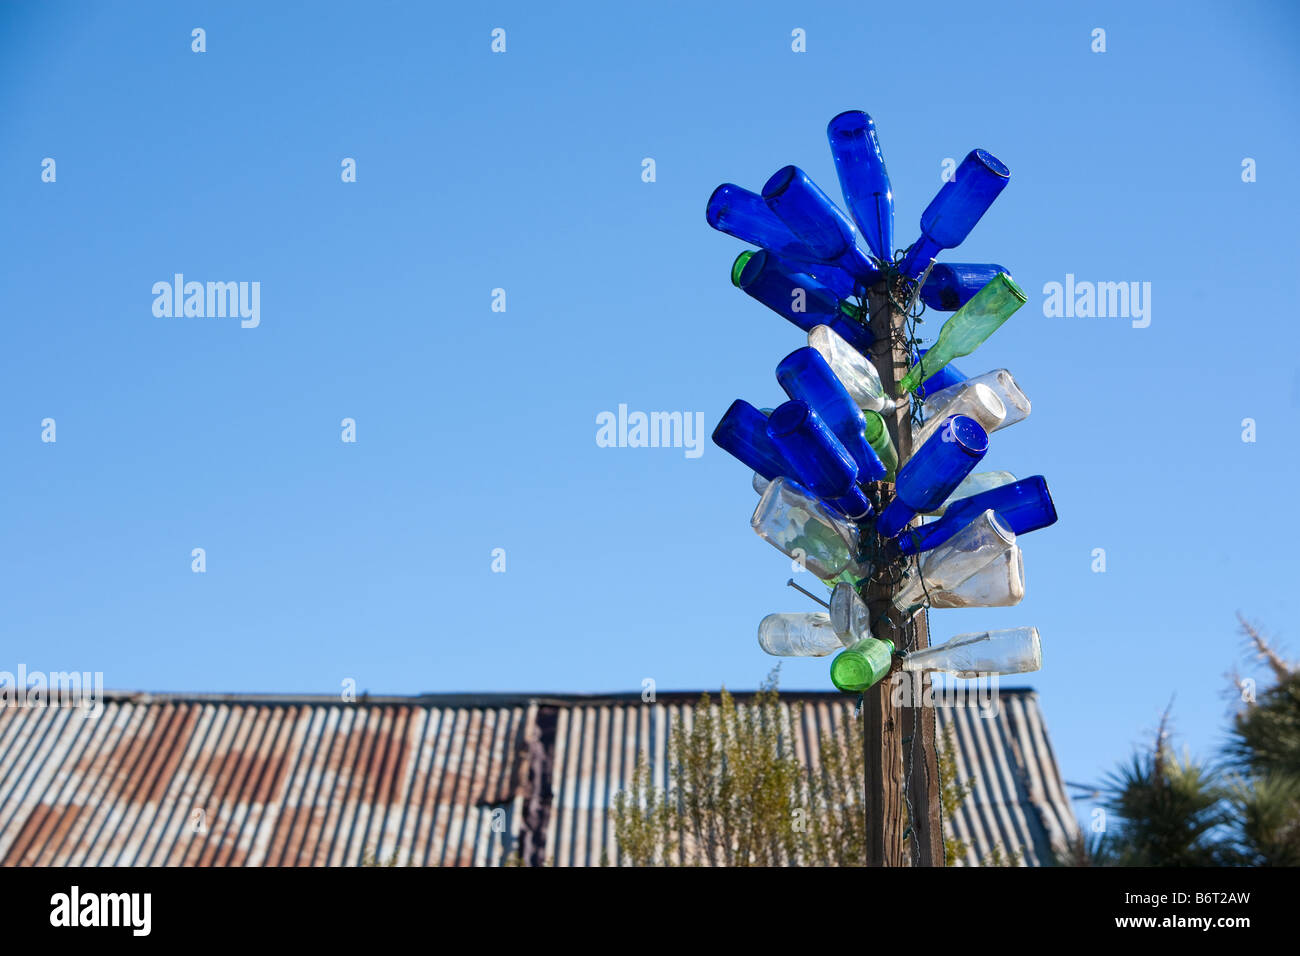 An artist's creation of a sculpture made from old glass bottles is displayed on the top of a pole in Randsburg - Stock Image